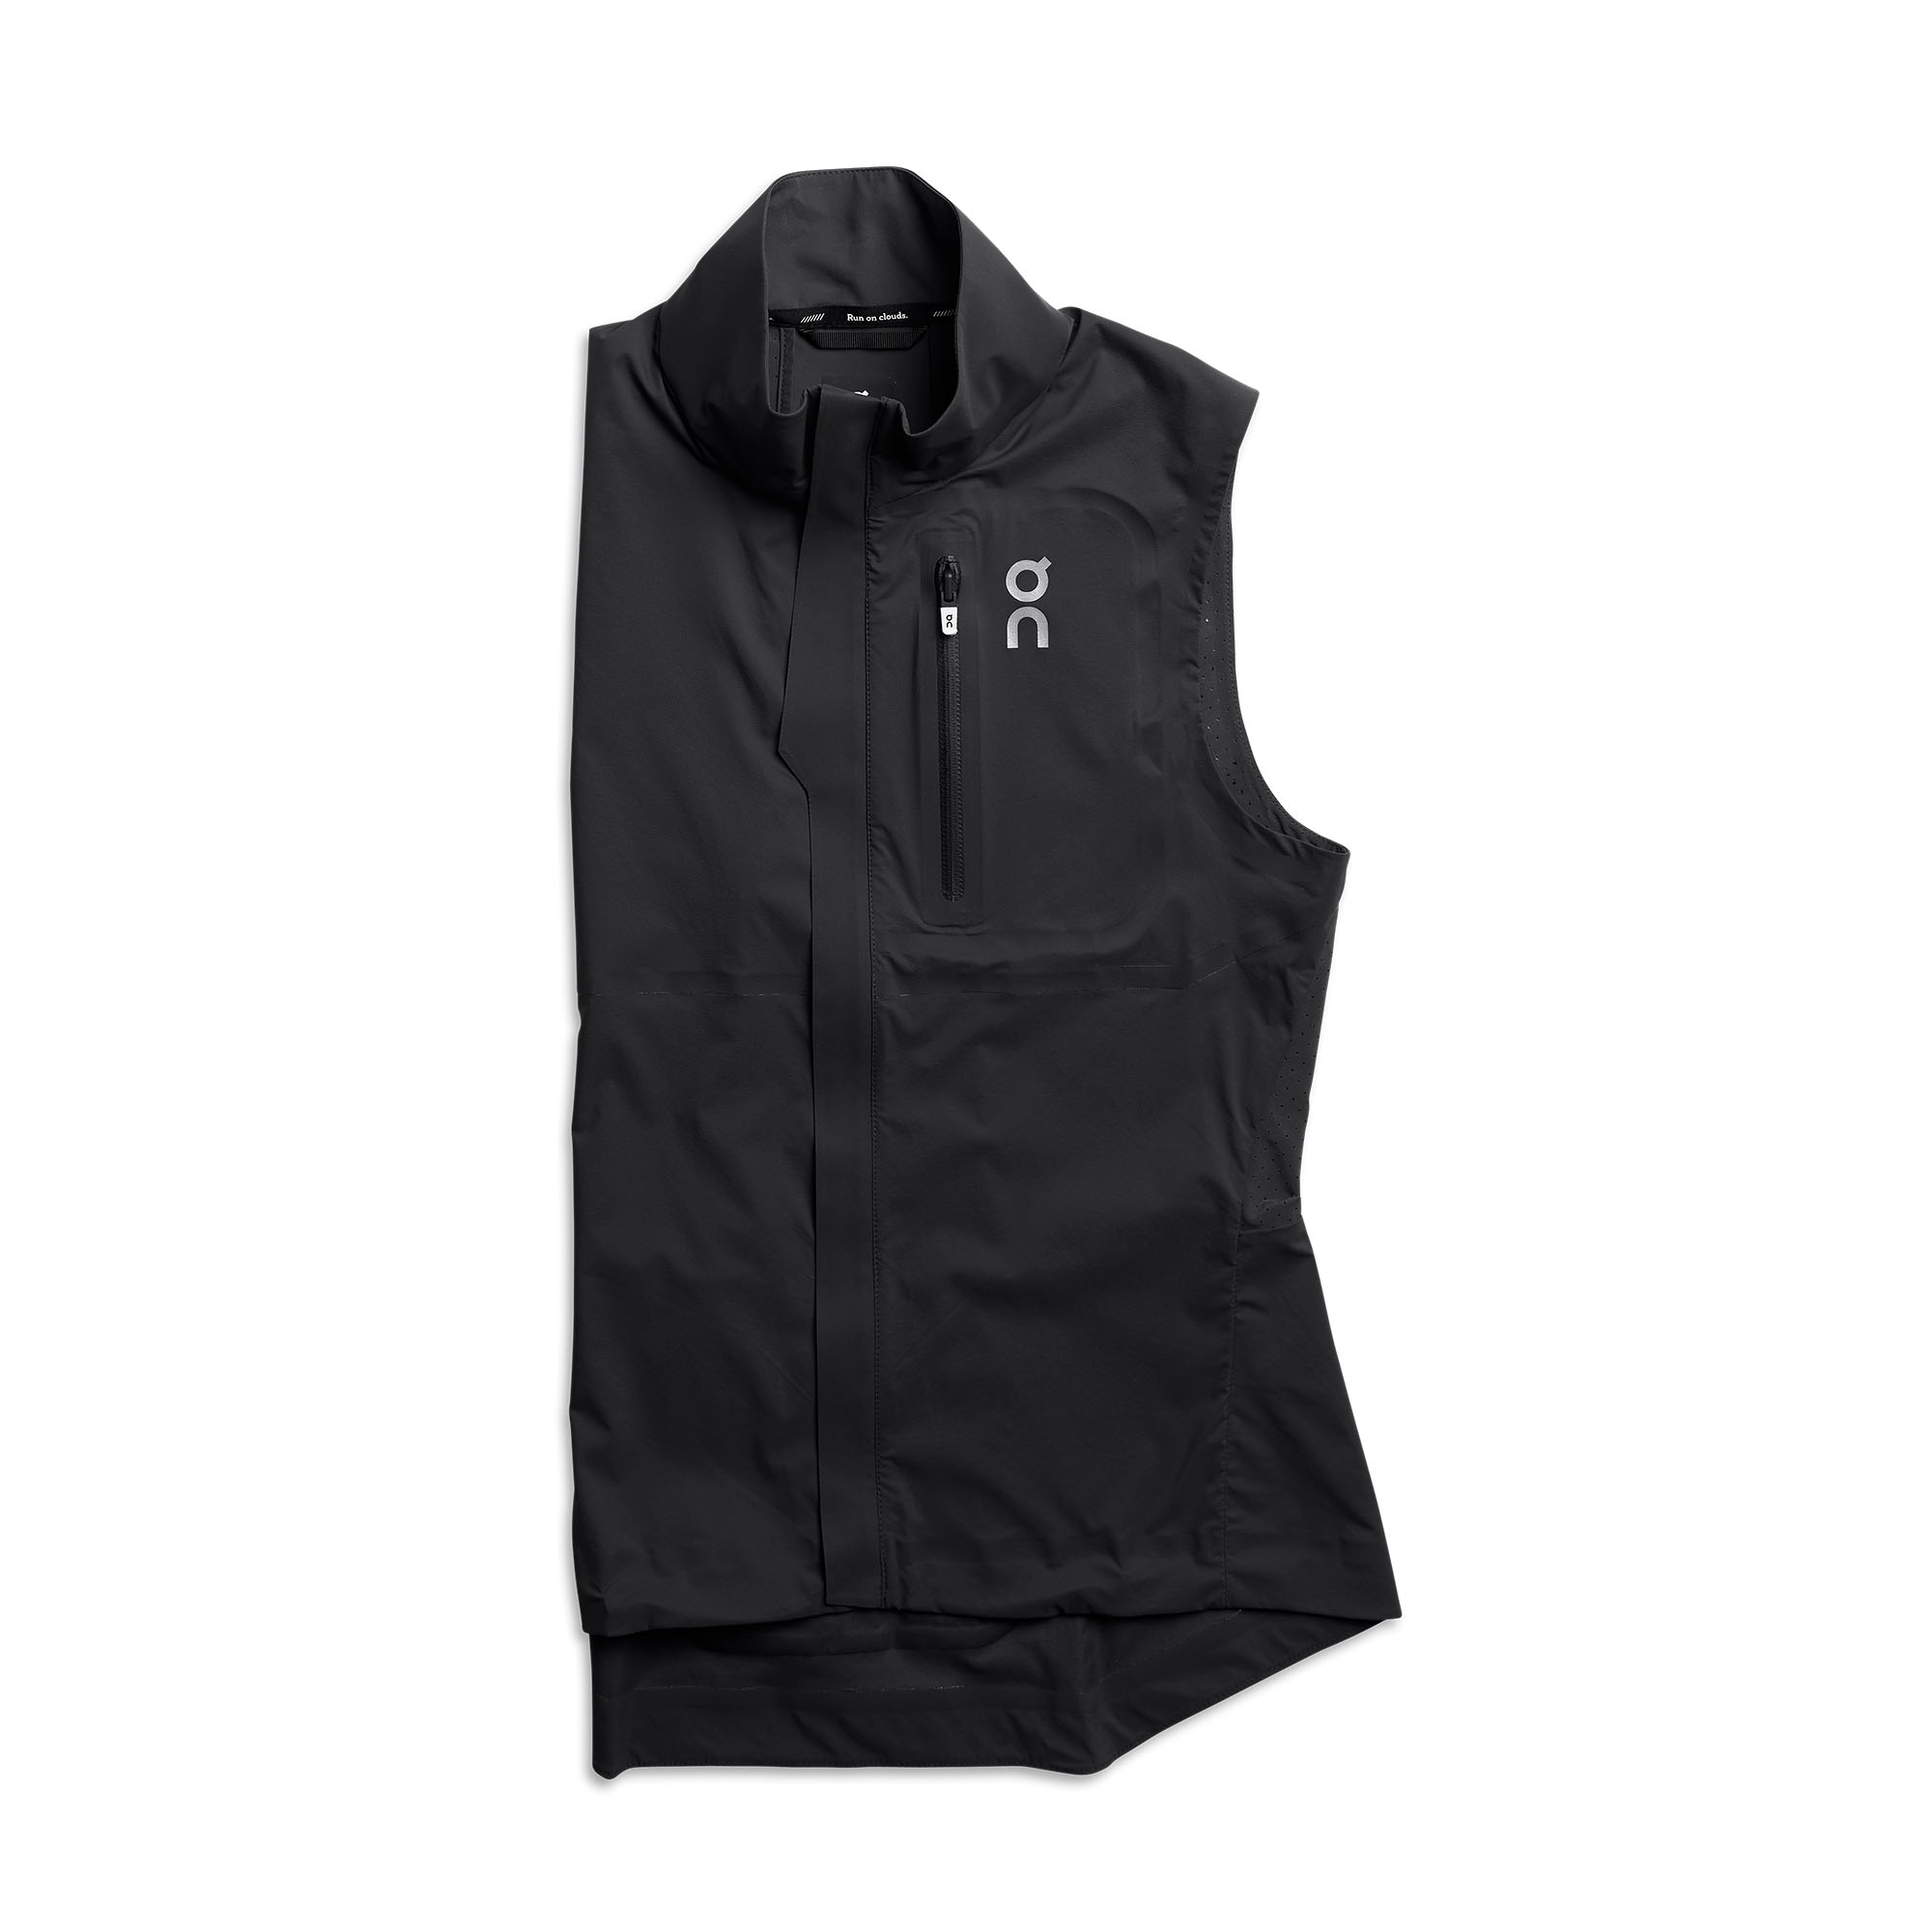 【WOMEN'S】On Weather Vest Black